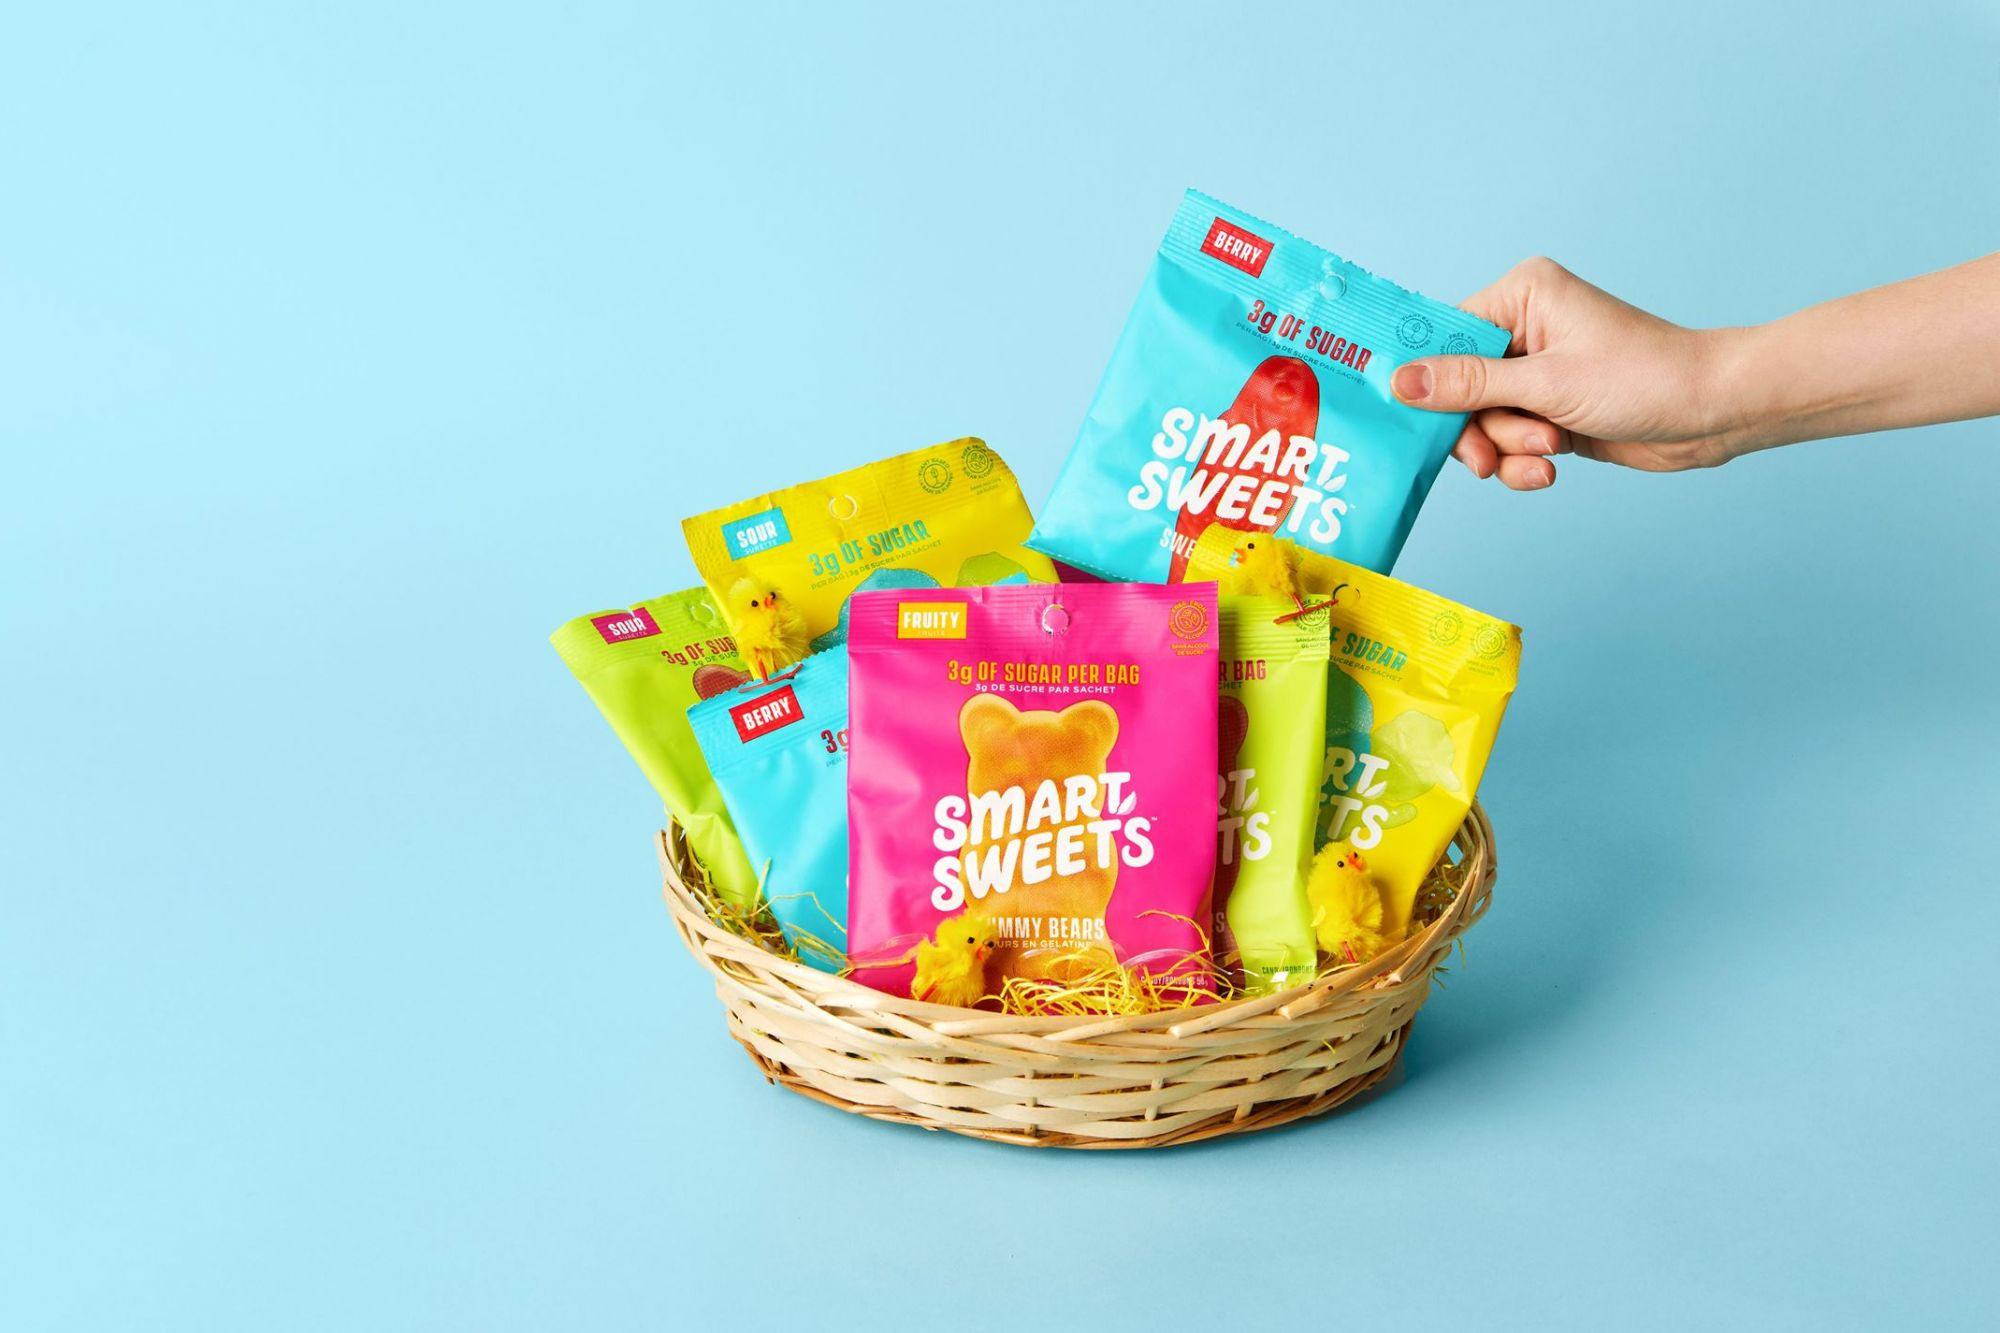 This Young Entrepreneur, Who Has Raised $6 Million, Is on a Mission to Kick Sugar Out of Candy